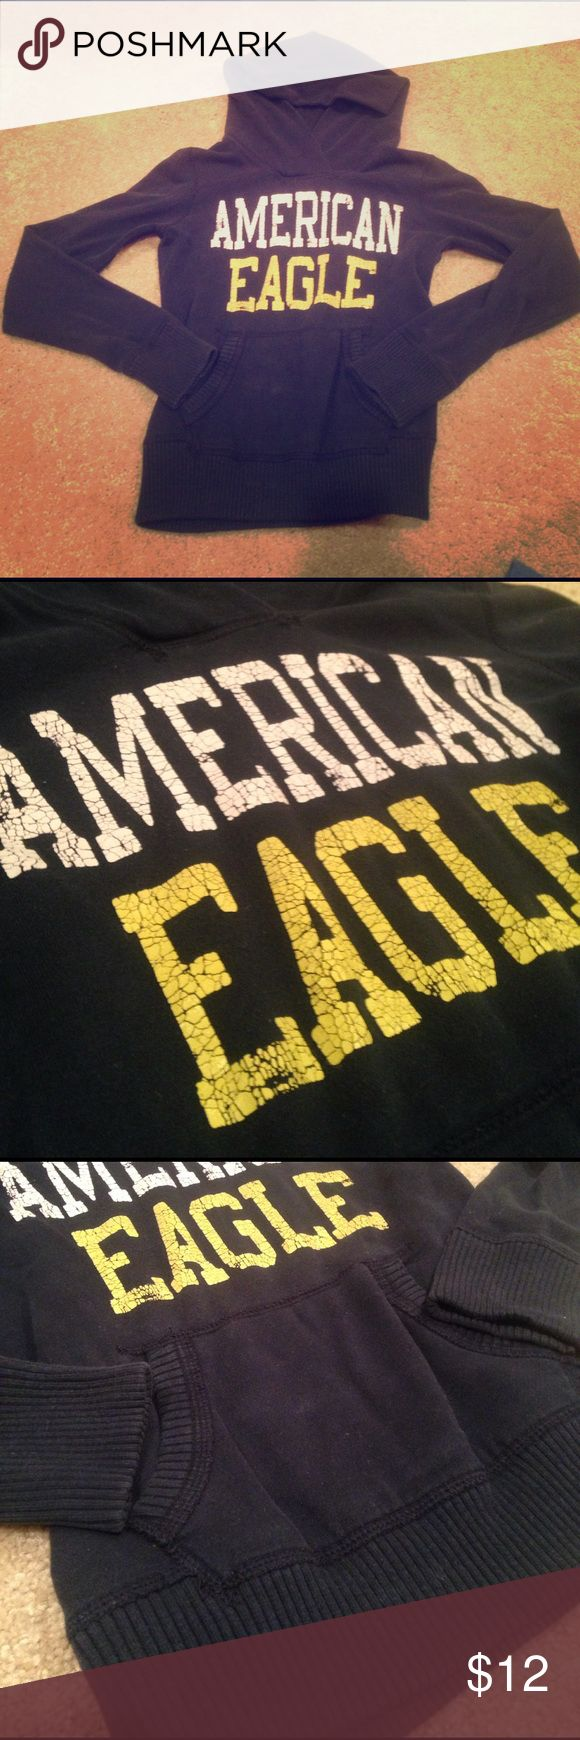 American Eagle pullover hoodie Pre loved. Dark blue with yellow and white writing. Some fading and cracking in the writing as shown in photos. Thick and cozy. Big hood. Love AE hoodies ☺️ American Eagle Outfitters Sweaters